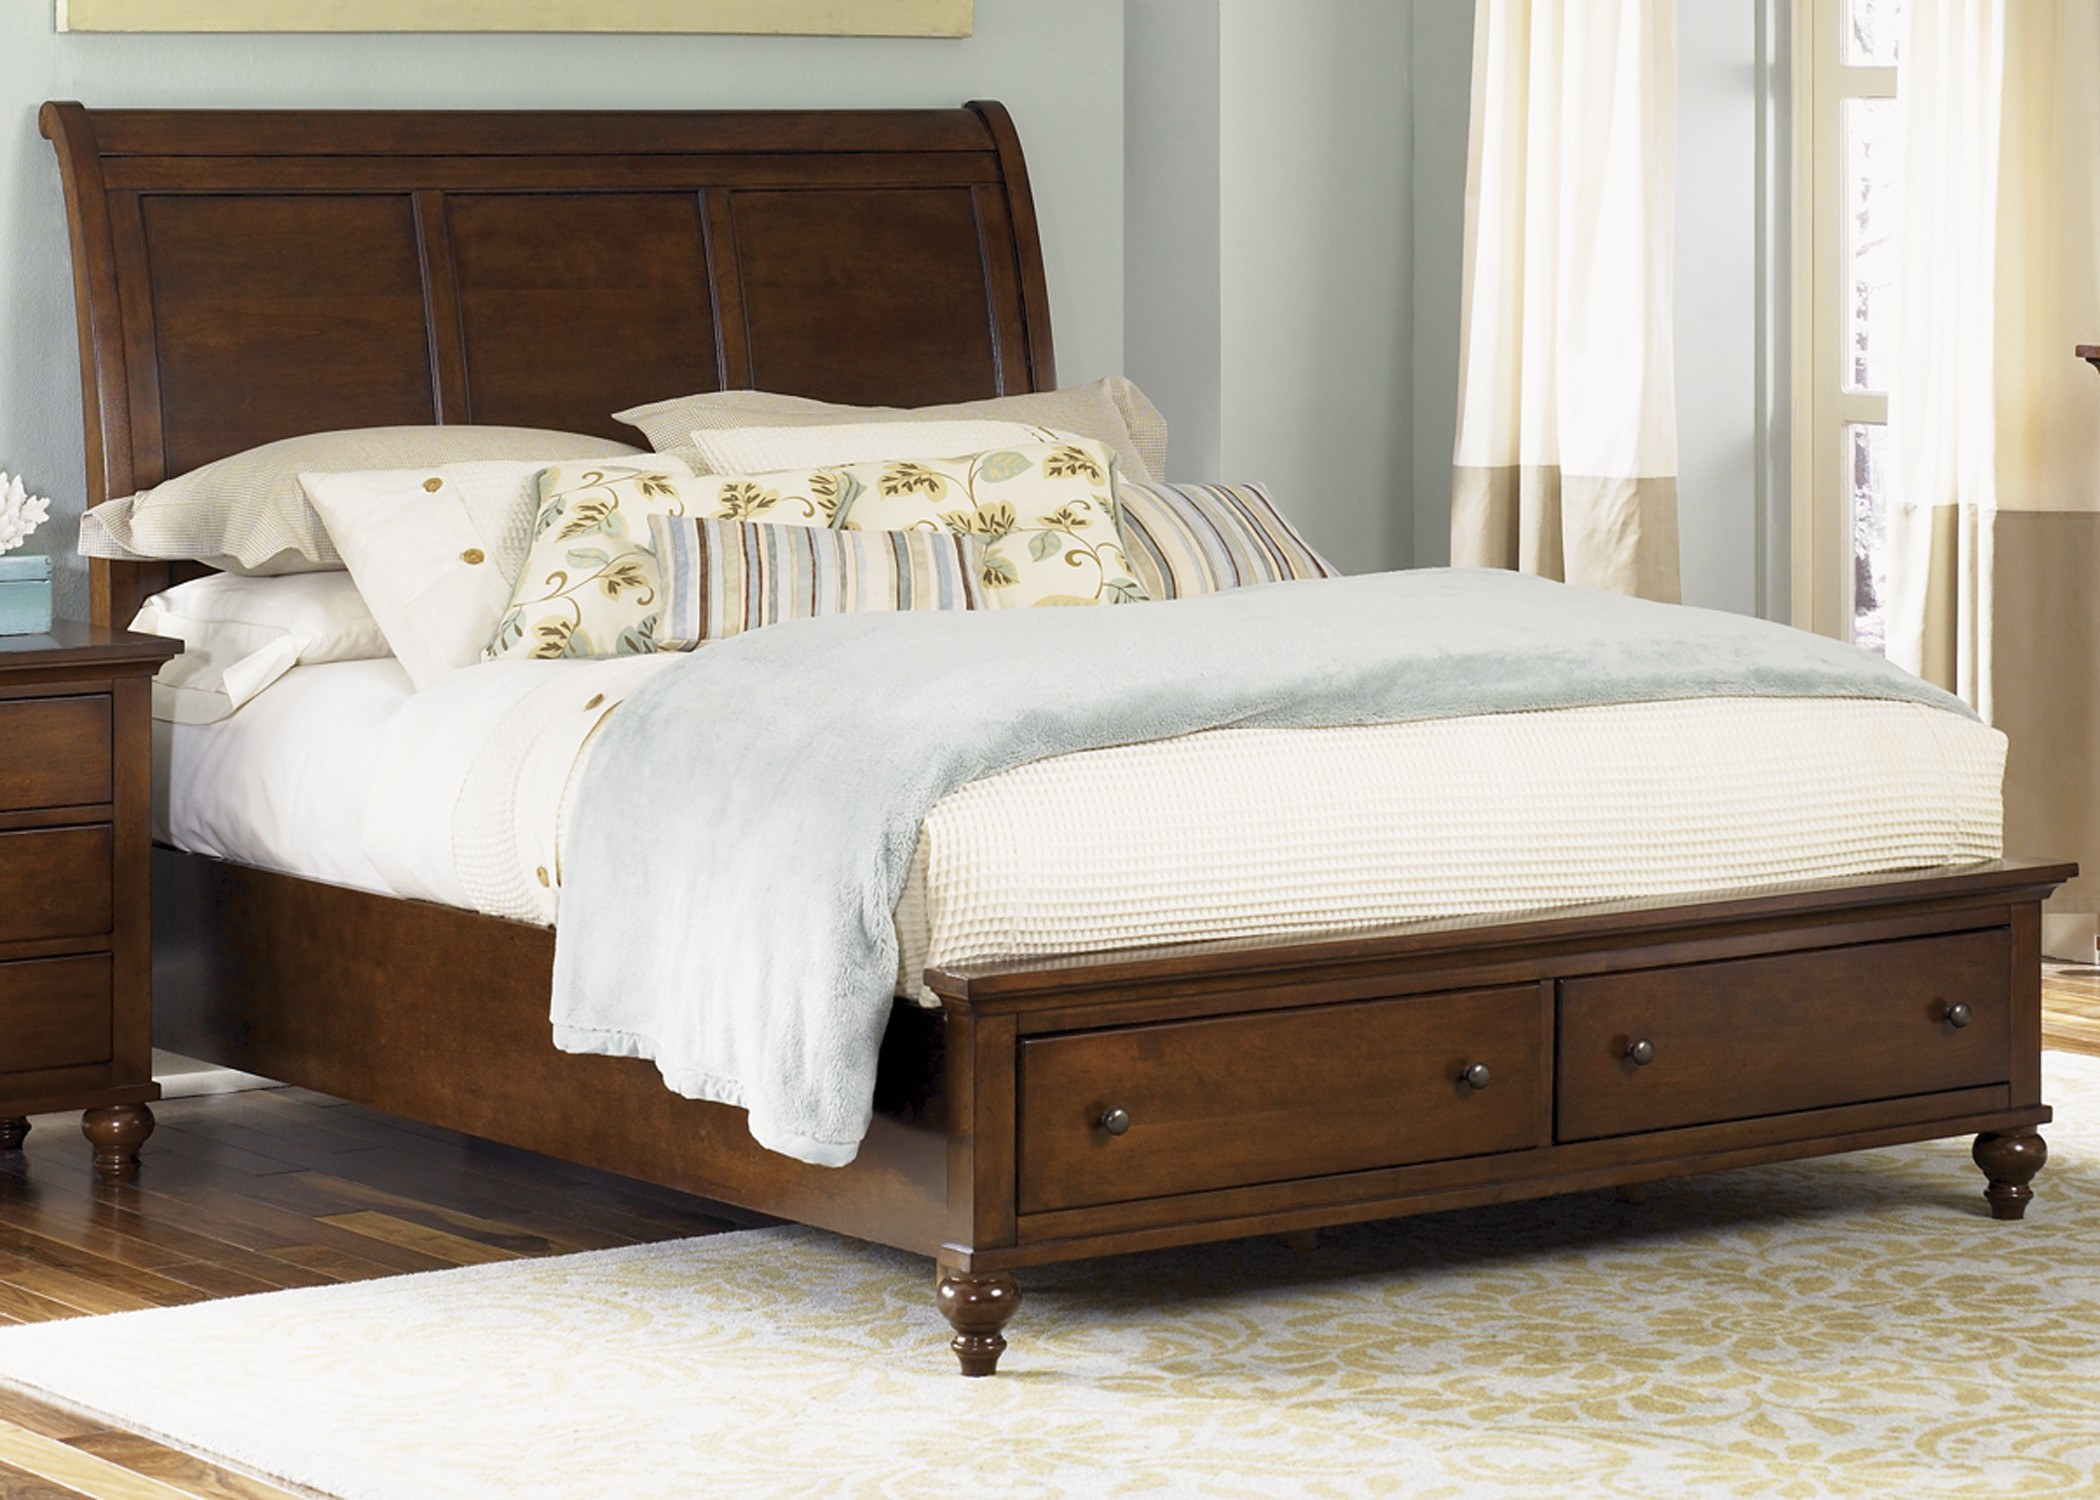 Hamilton King Sleigh Storage Bed From Liberty 341 Br Ksb